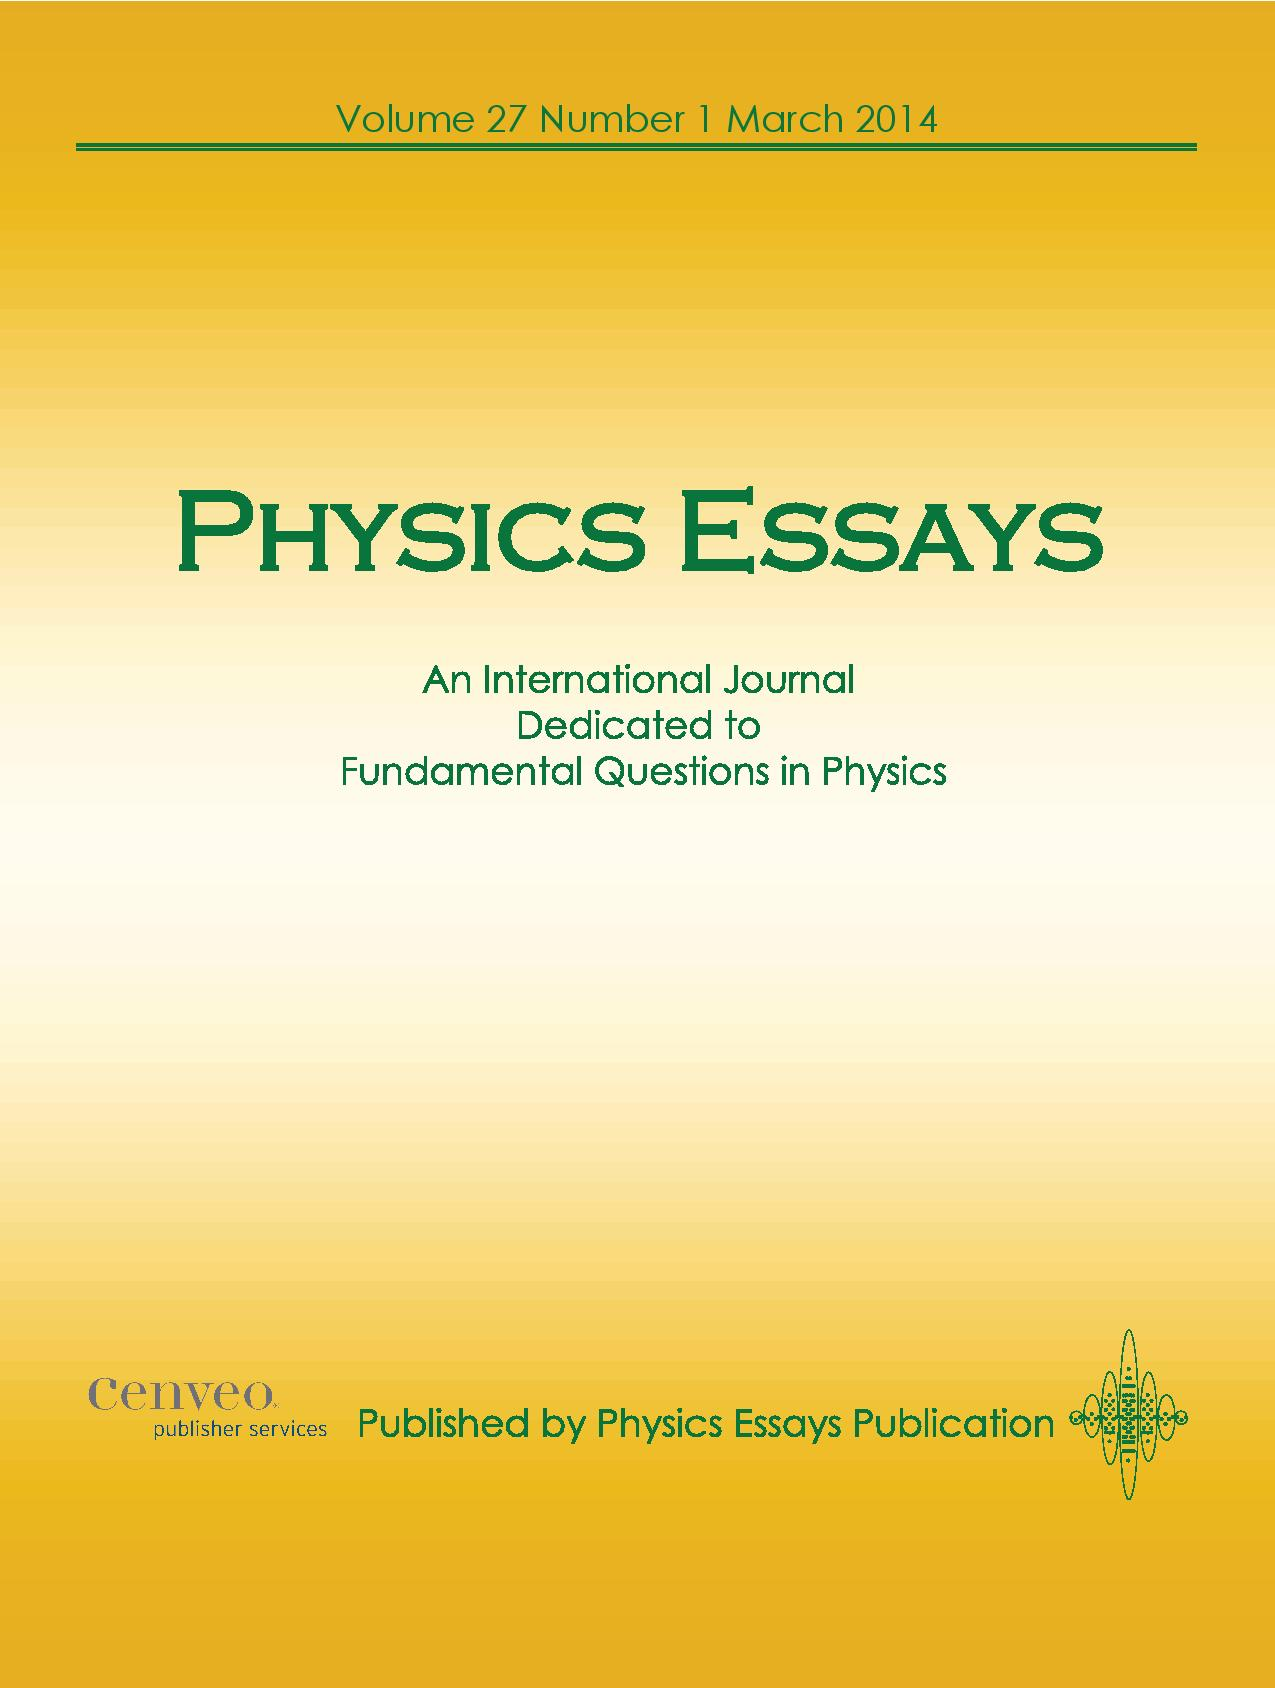 001 Cover 2014  Copy 2 Page Physics Essays Essay Rare Extended Topics Examples Wikipedia CrackpotFull